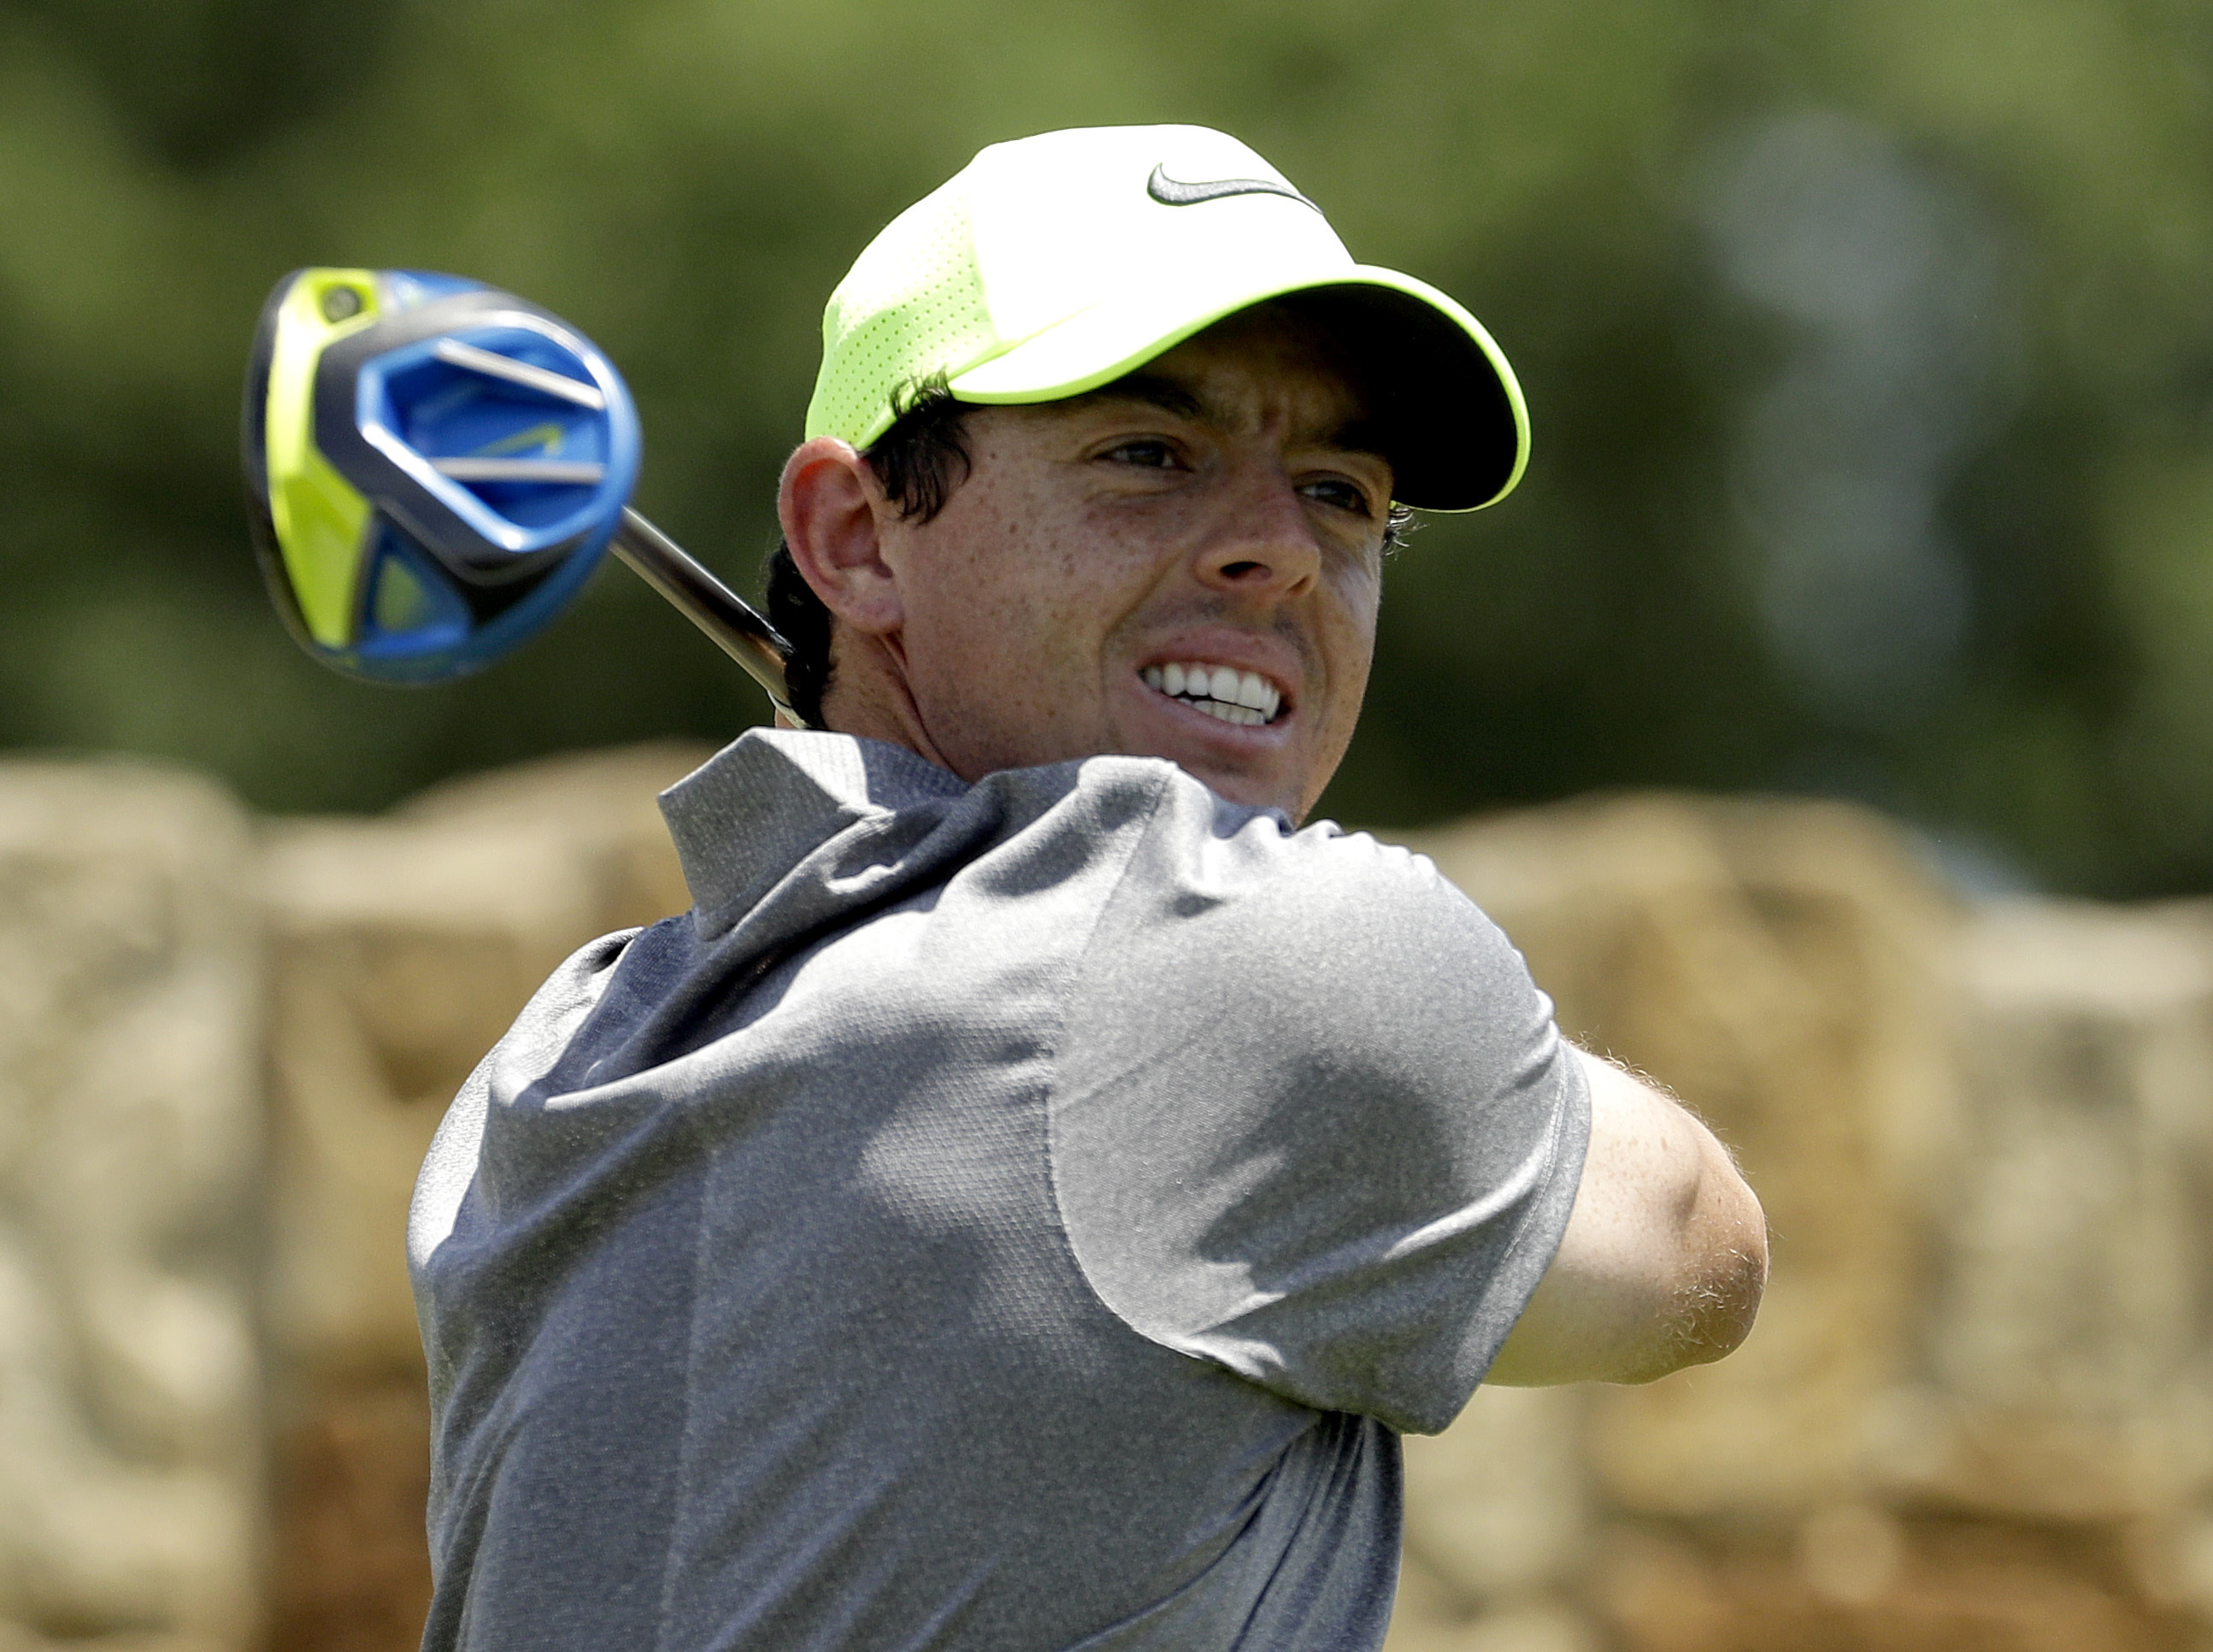 Rory McIlroy shot a 66 in the second round.